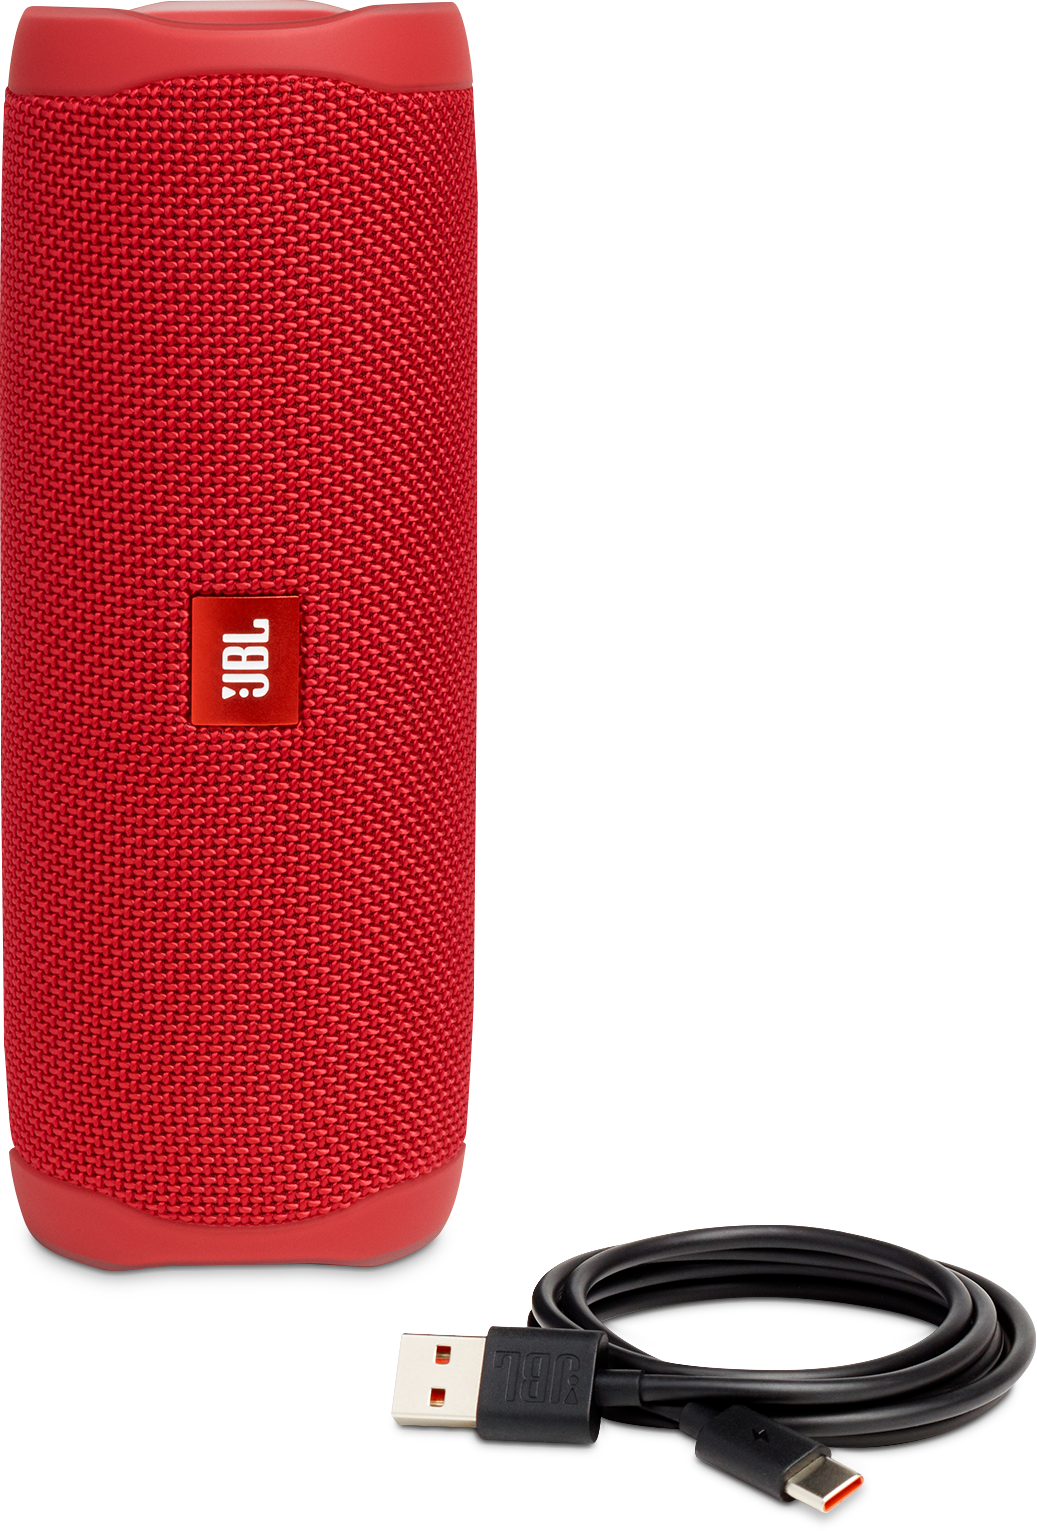 RE3N3B8?ver=cae9 - JBL FLIP5 Portable Waterproof Speaker